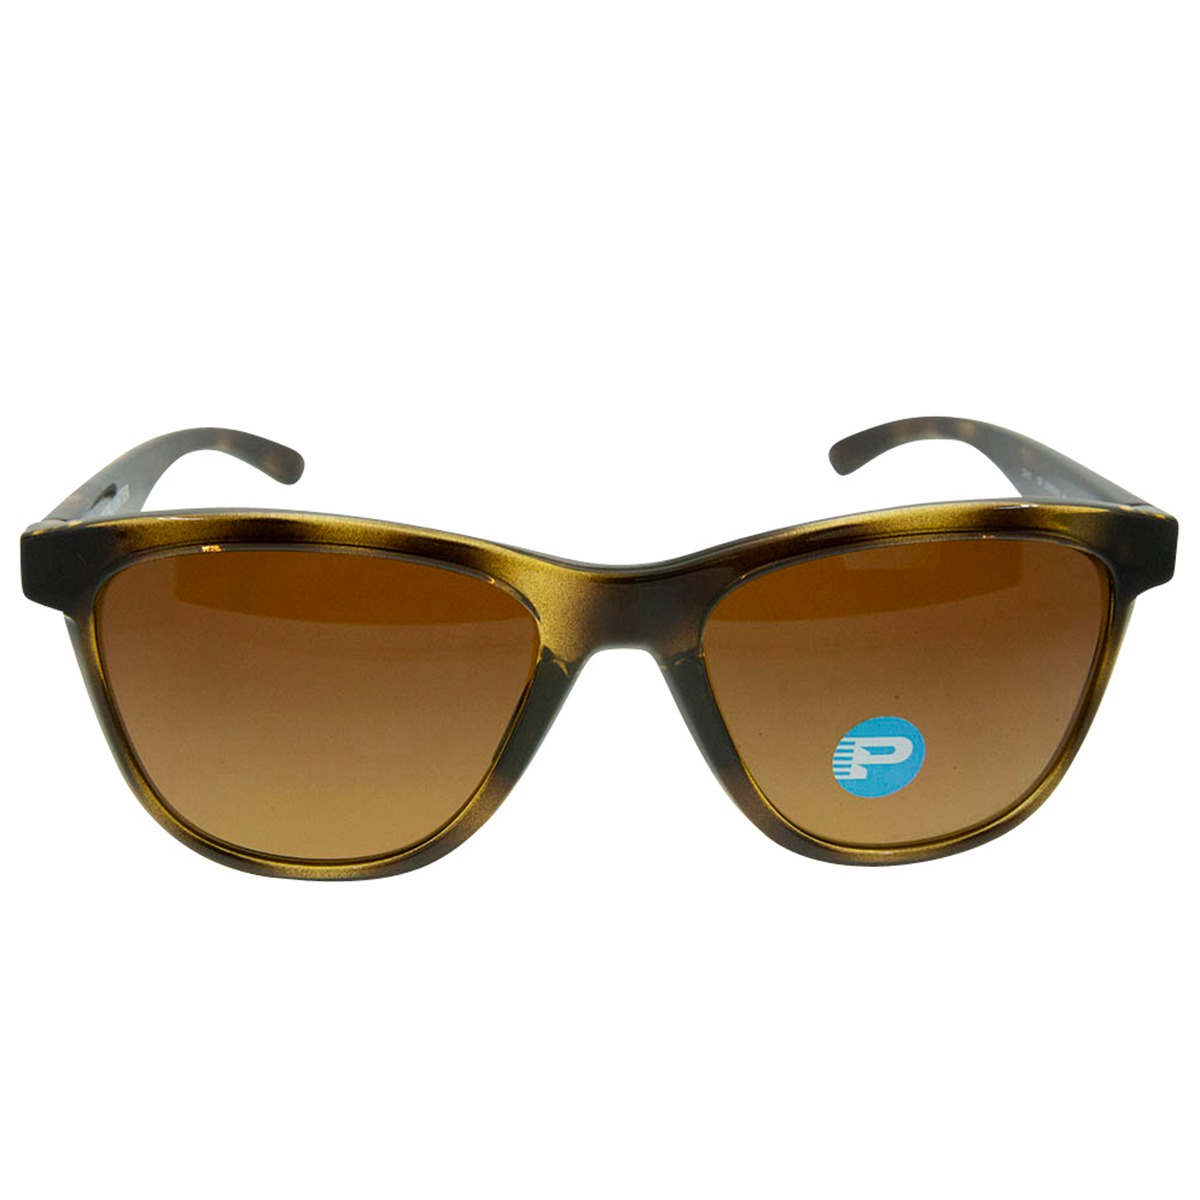 fad2990bca Details about New Authentic Oakley Moonlighter Sunglasses Tort with Brown  Gradient - Polarized